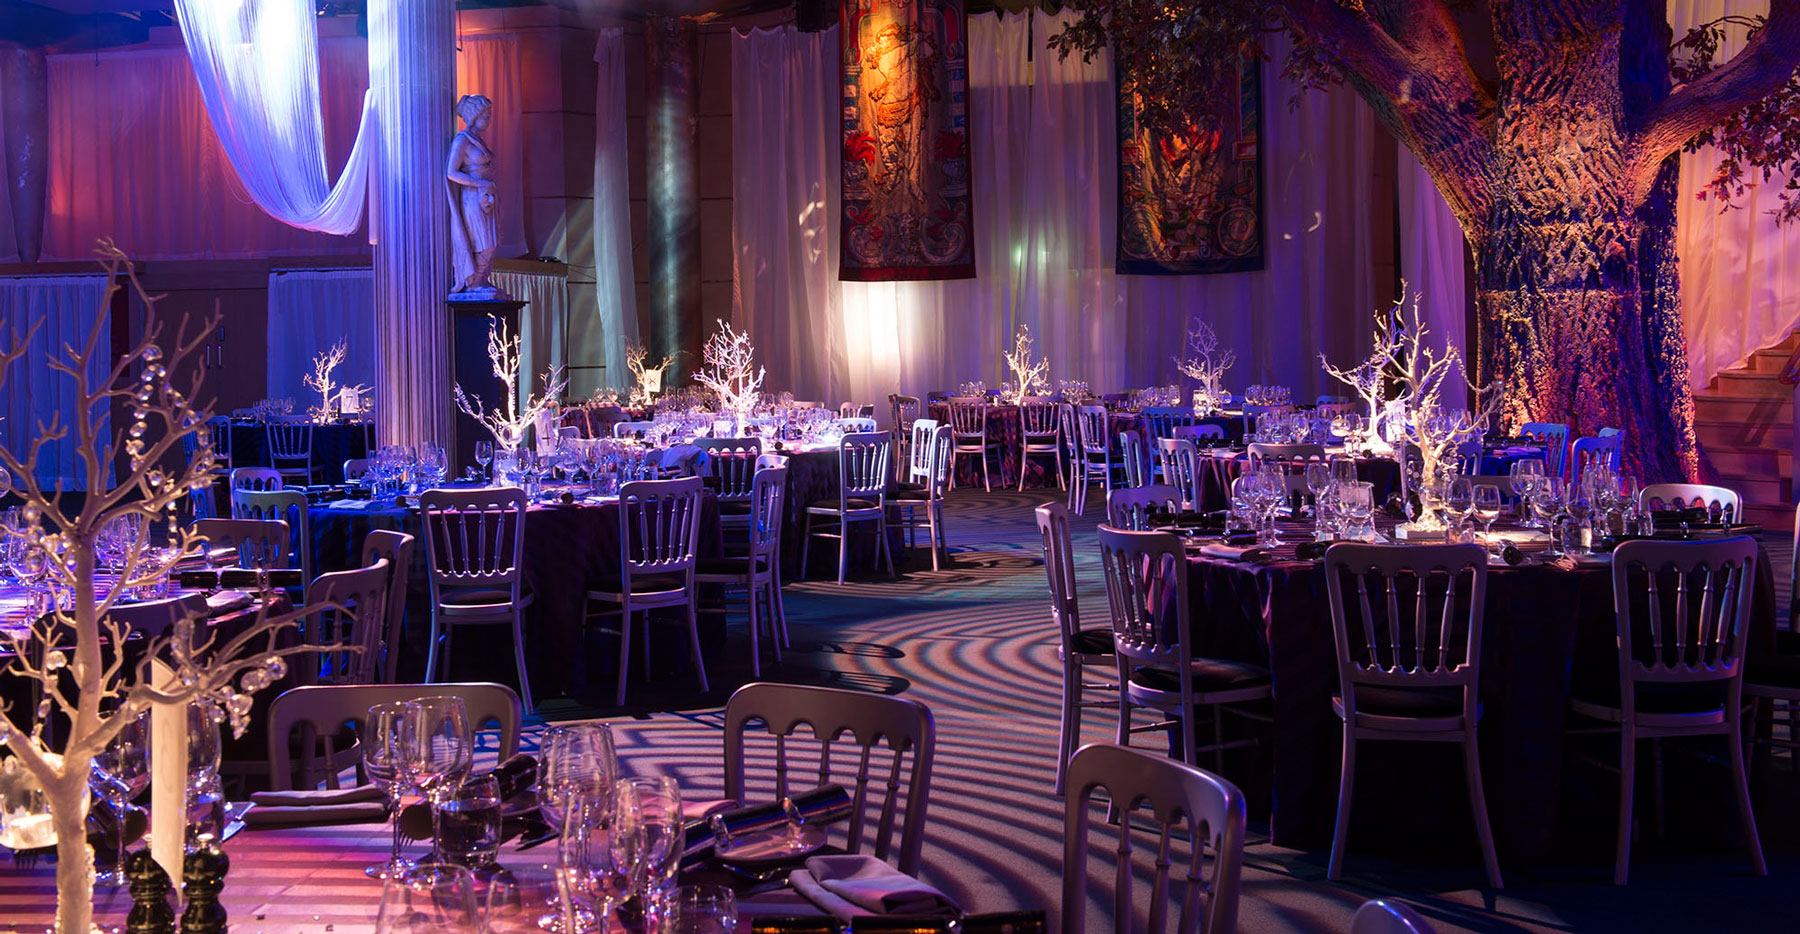 Underglobe Event Venues Amp Spaces Swan Restaurant London